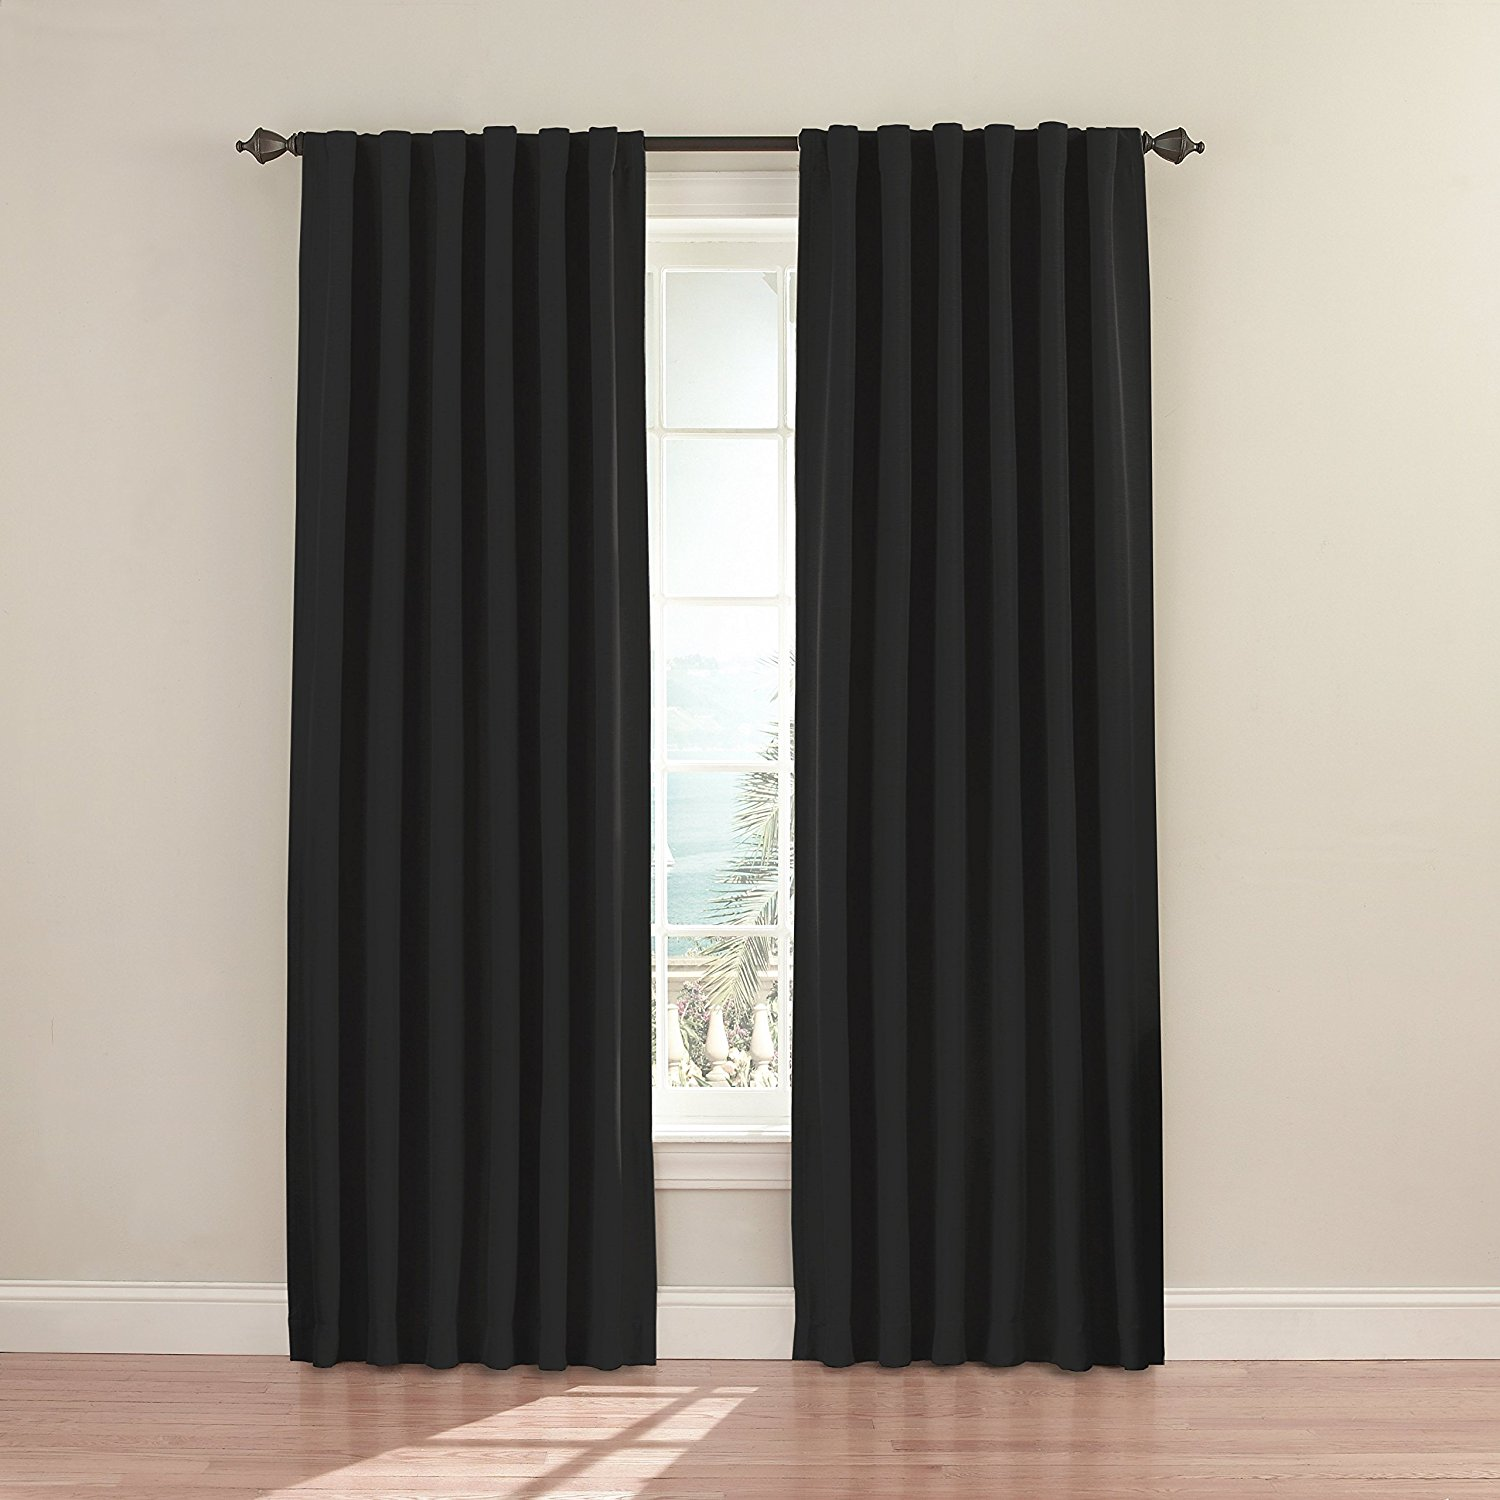 Cheap Blackout Curtains for Inspiring Home Decorating Ideas: Inexpensive Blackout Curtains | Drapes Blackout | Cheap Blackout Curtains